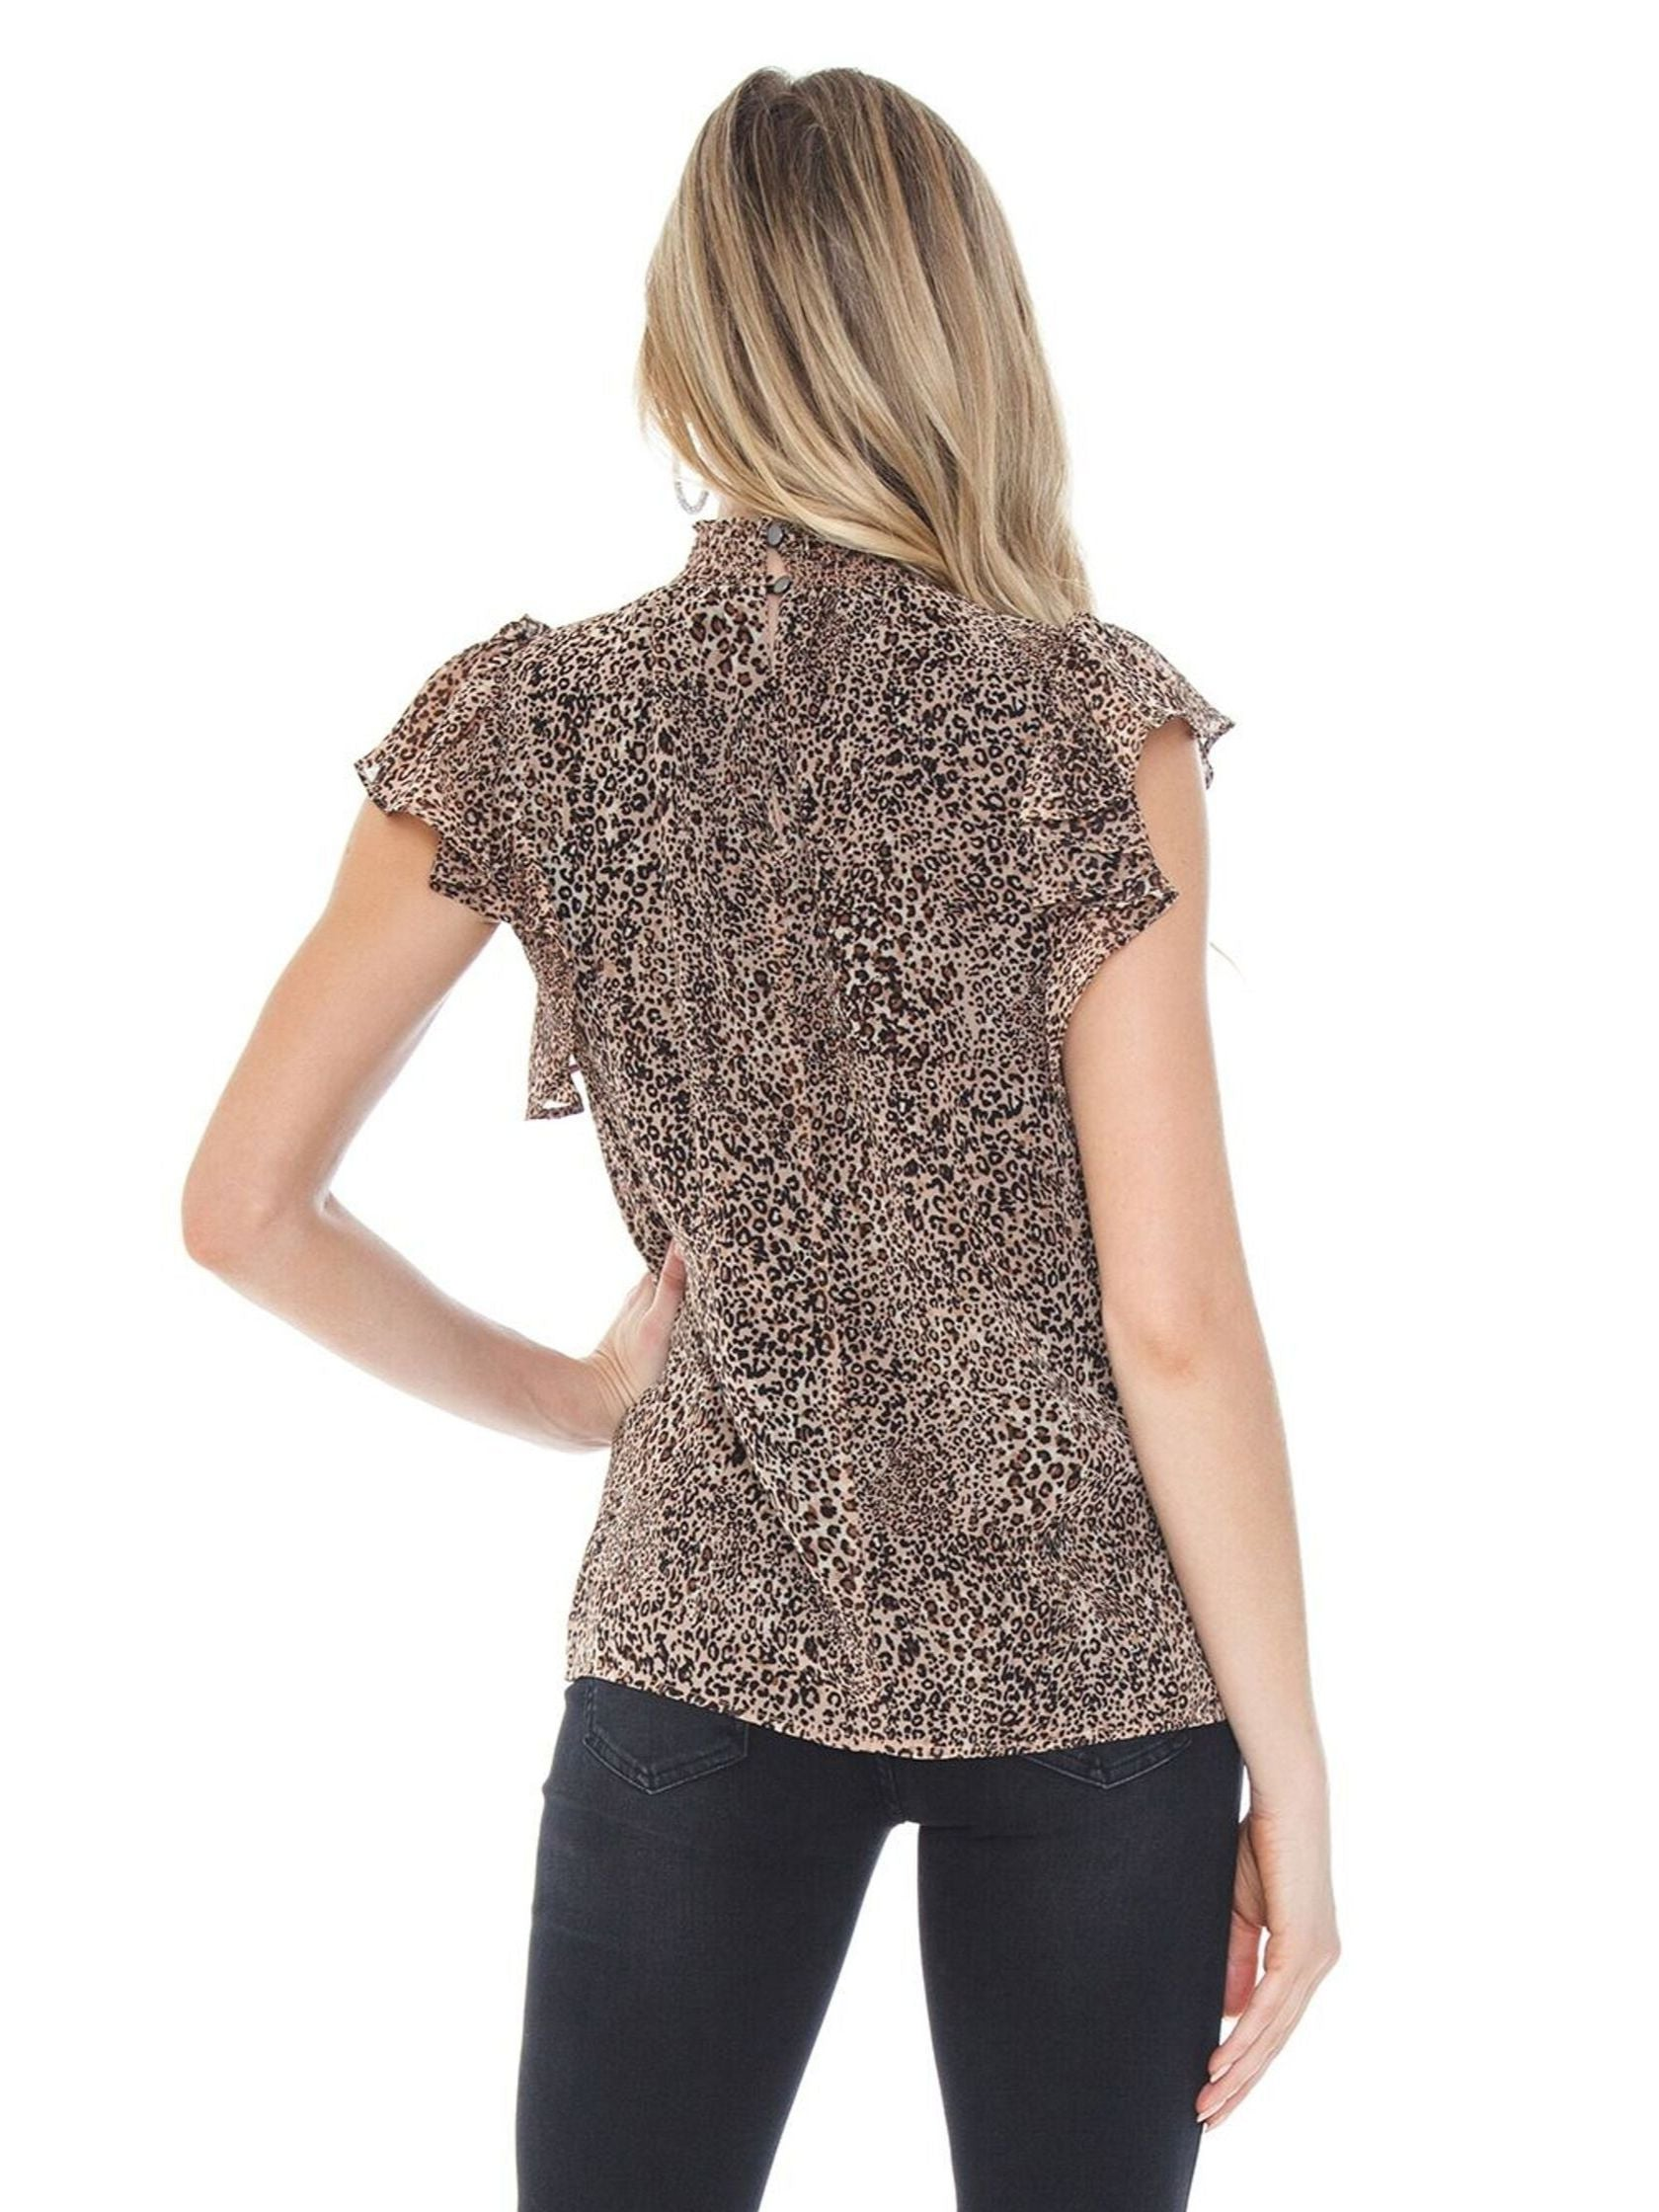 Women outfit in a top rental from 1.STATE called Leopard Muse Smocked Neck Keyhole Blouse